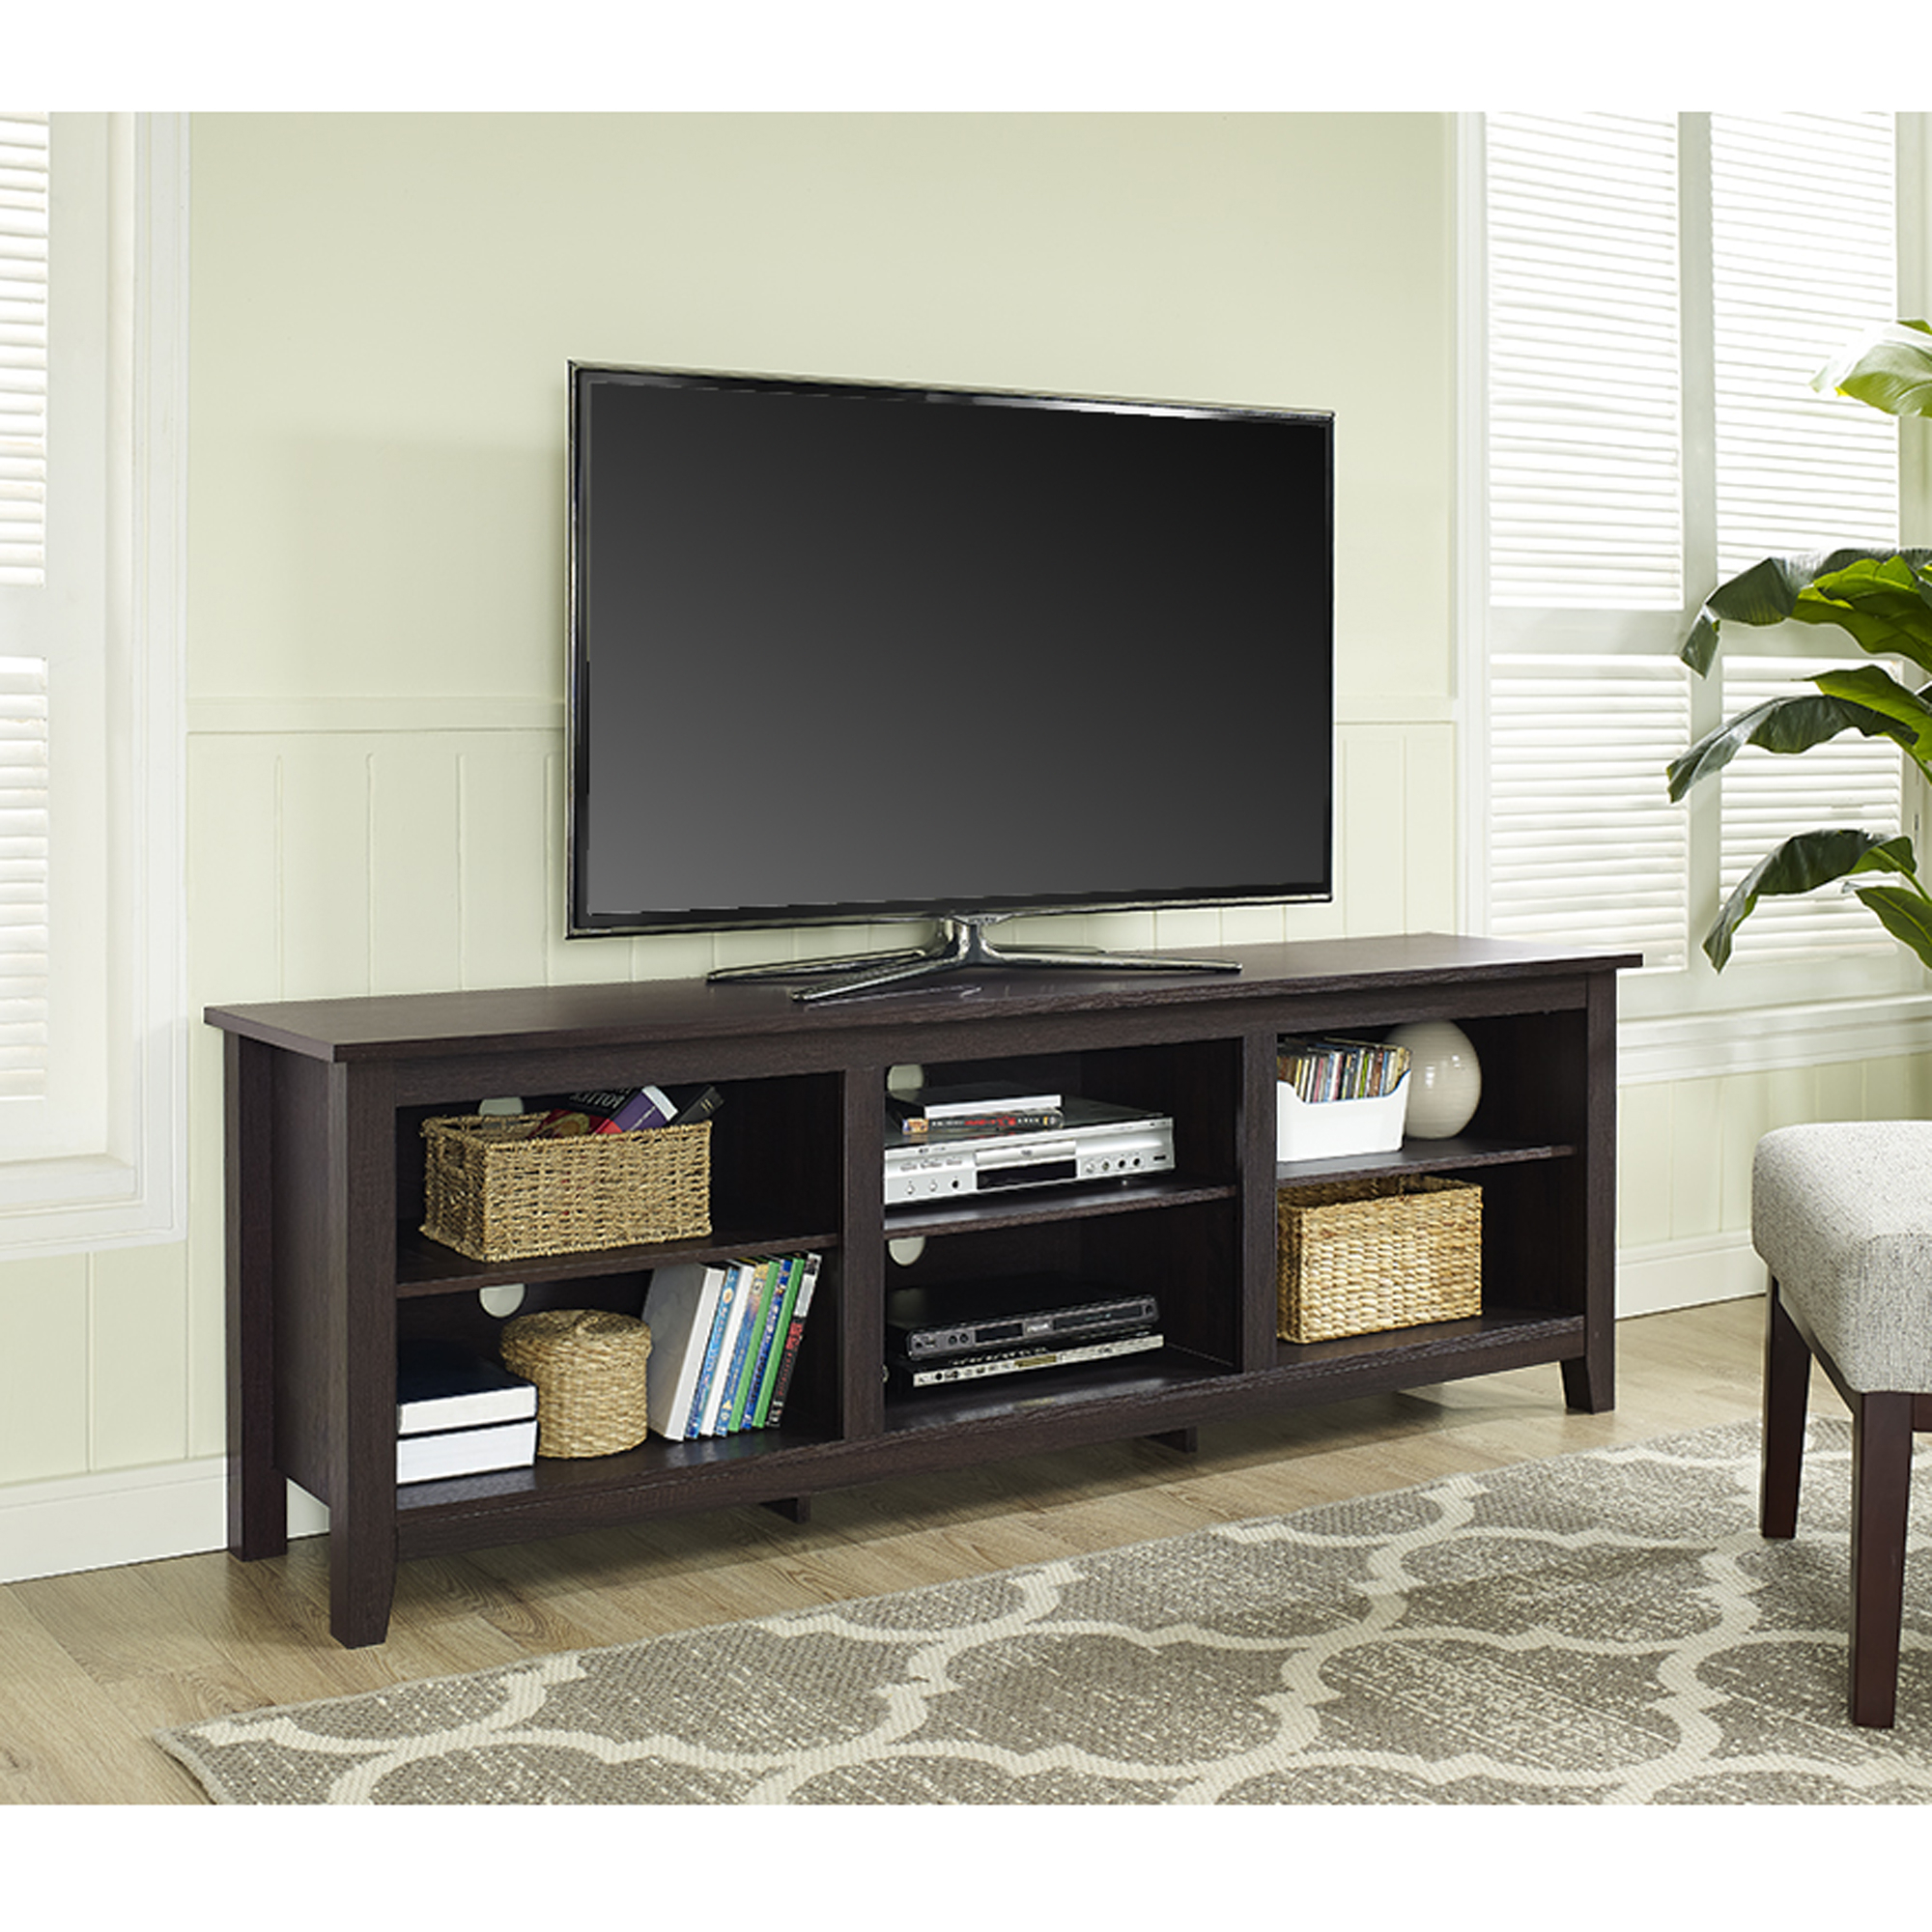 Trendy 24 Inch Tall Tv Stands With Tv Stand Clearance Black 55 Inch Big Lots Stands Target Small With (View 14 of 20)